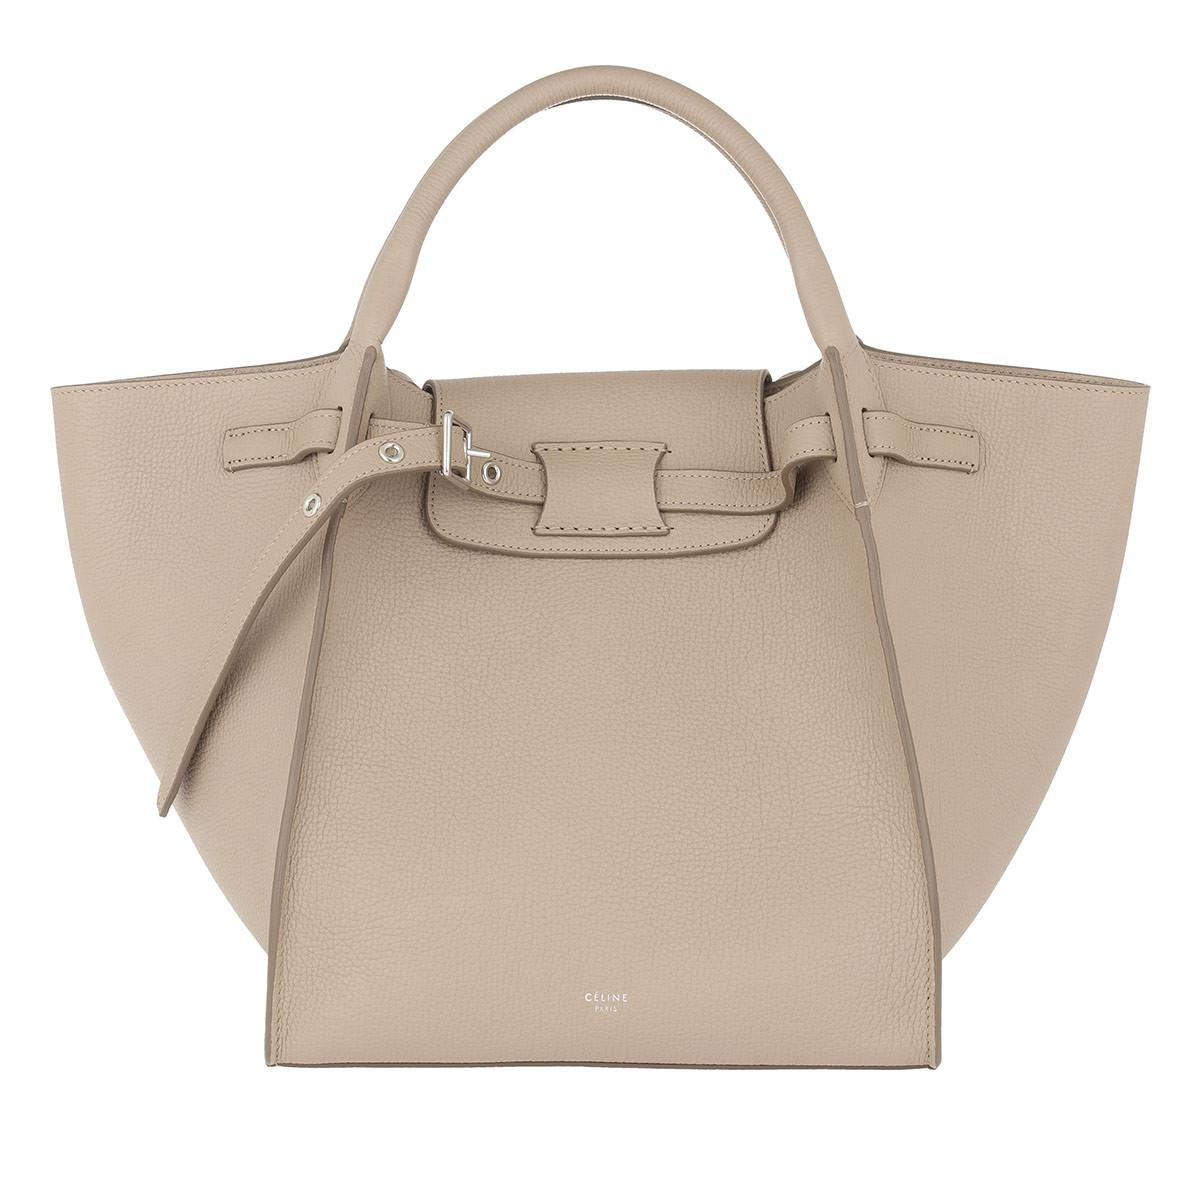 bc780f7de9 Céline Small Big Bag Grained Calfskin Light Taupe in Natural - Lyst